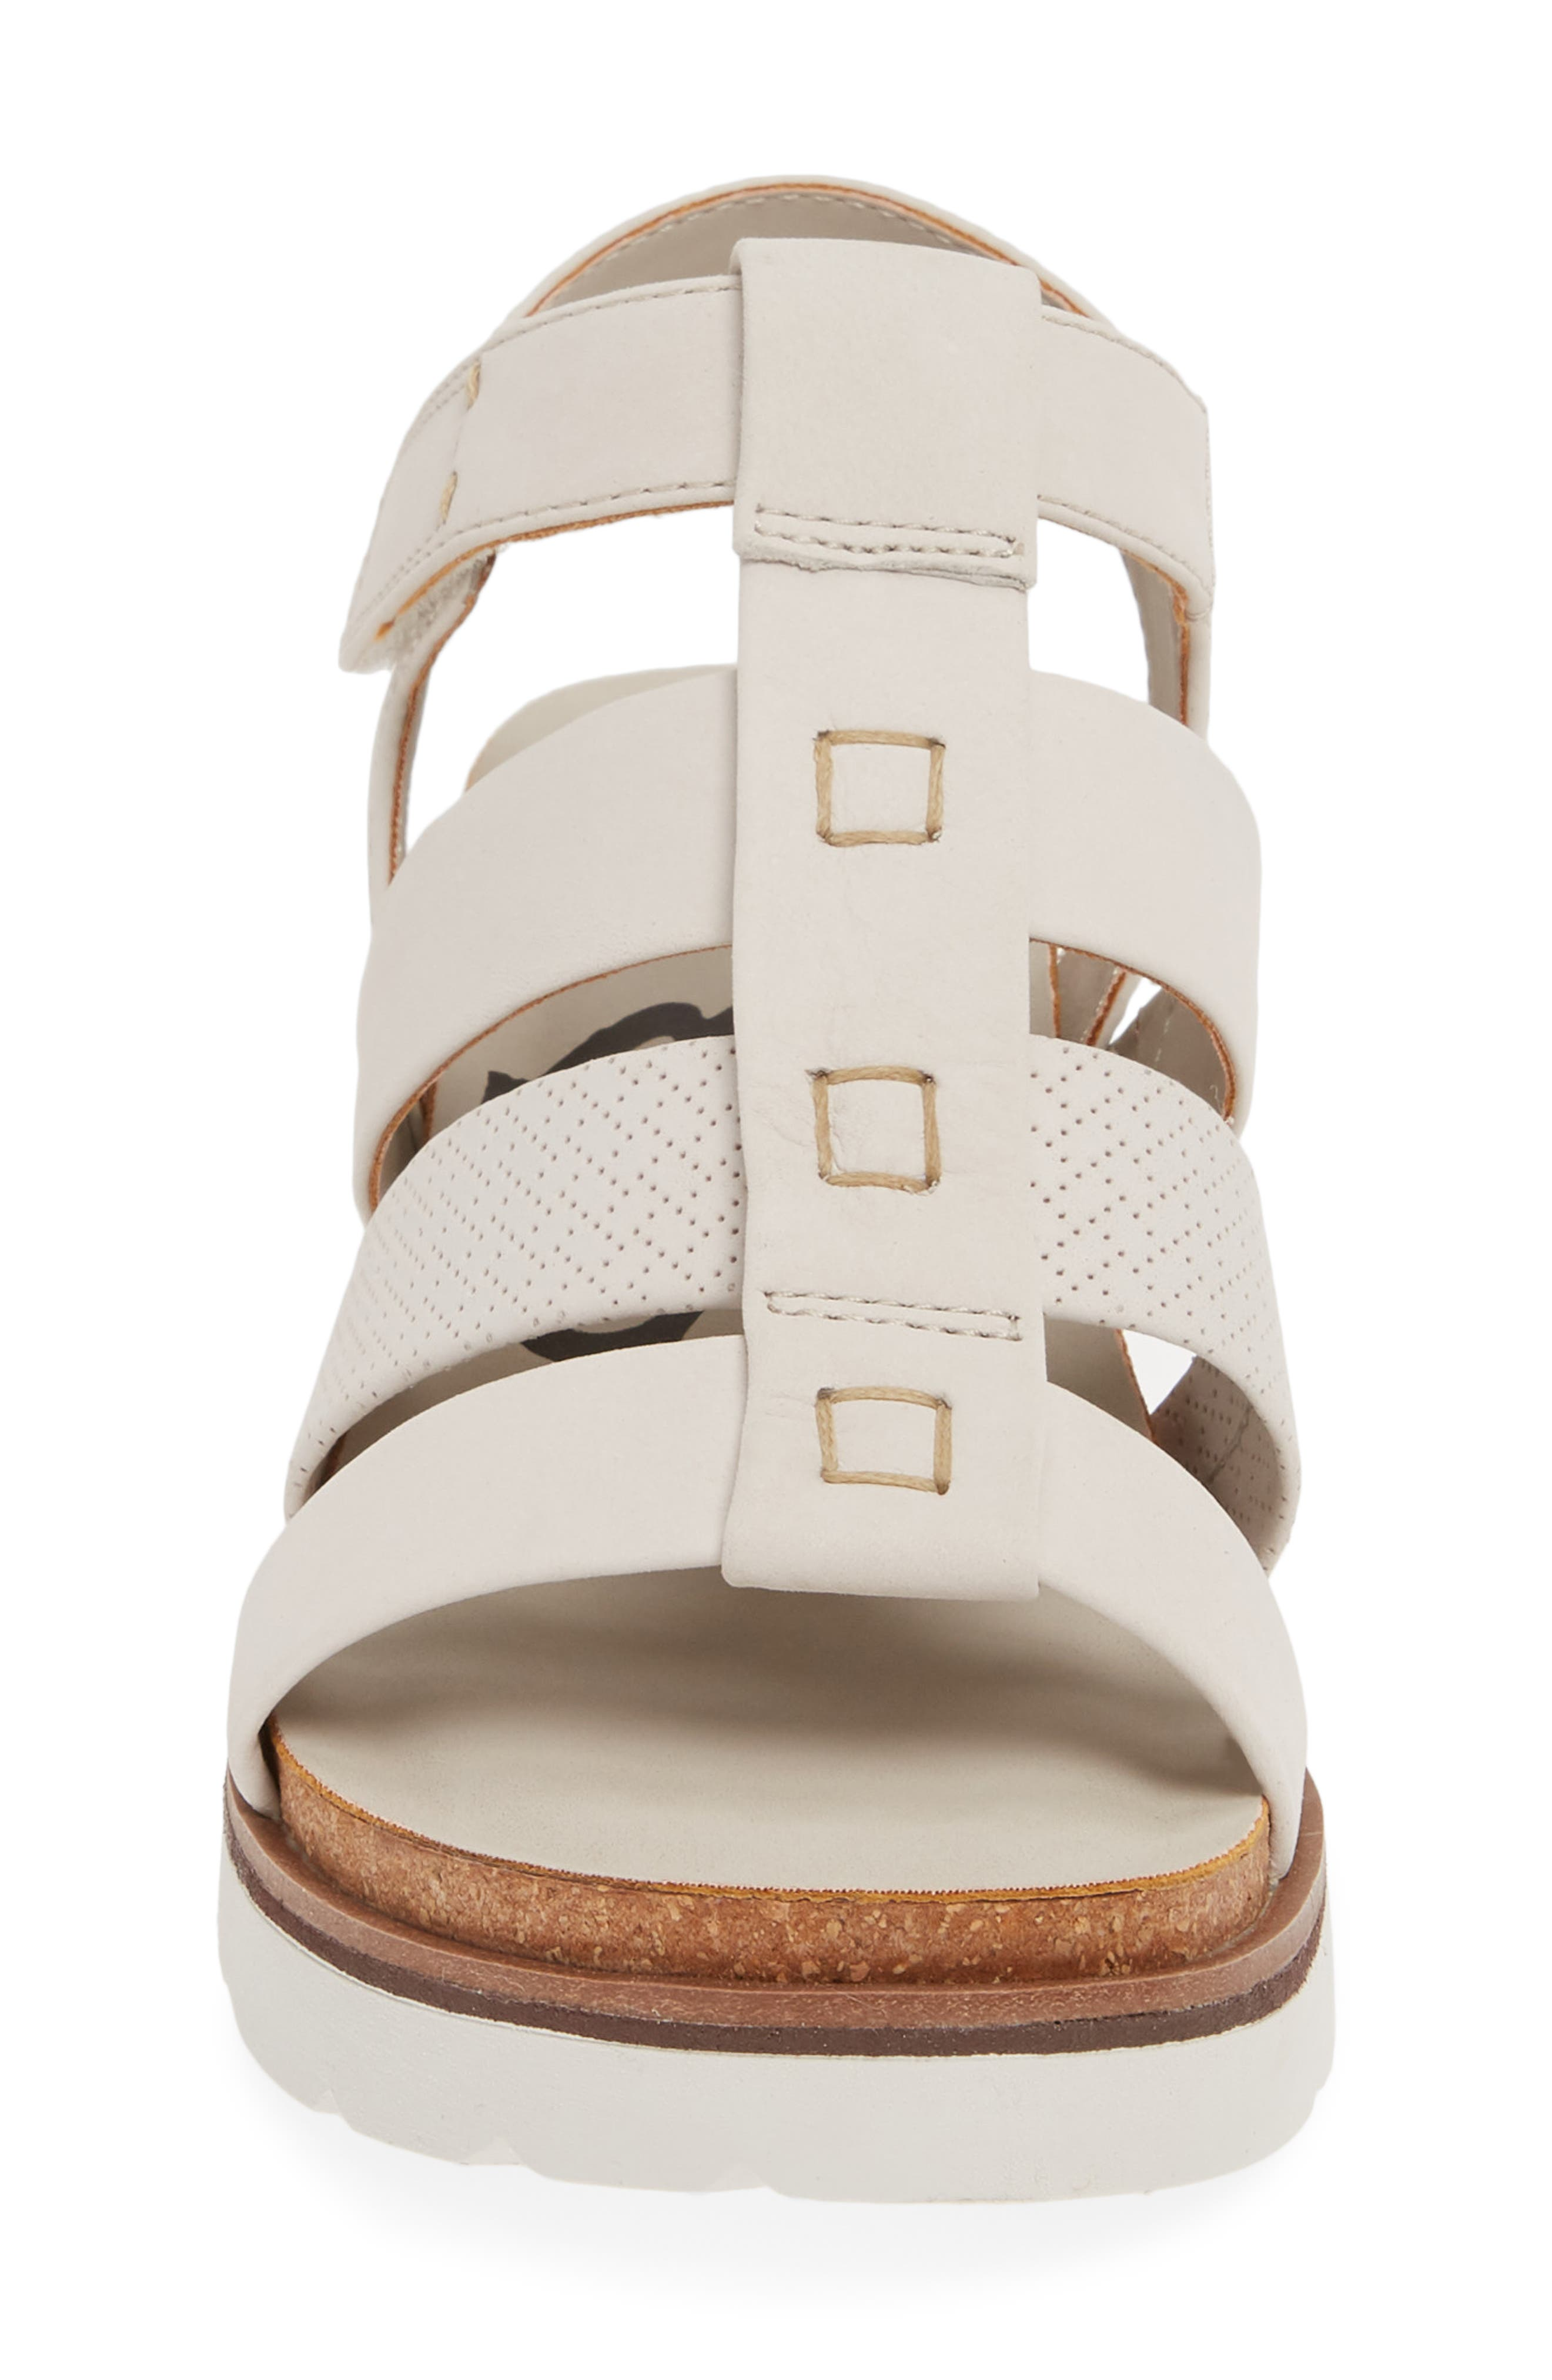 New Moon Wedge Sandal,                             Alternate thumbnail 4, color,                             DOVE GREY LEATHER